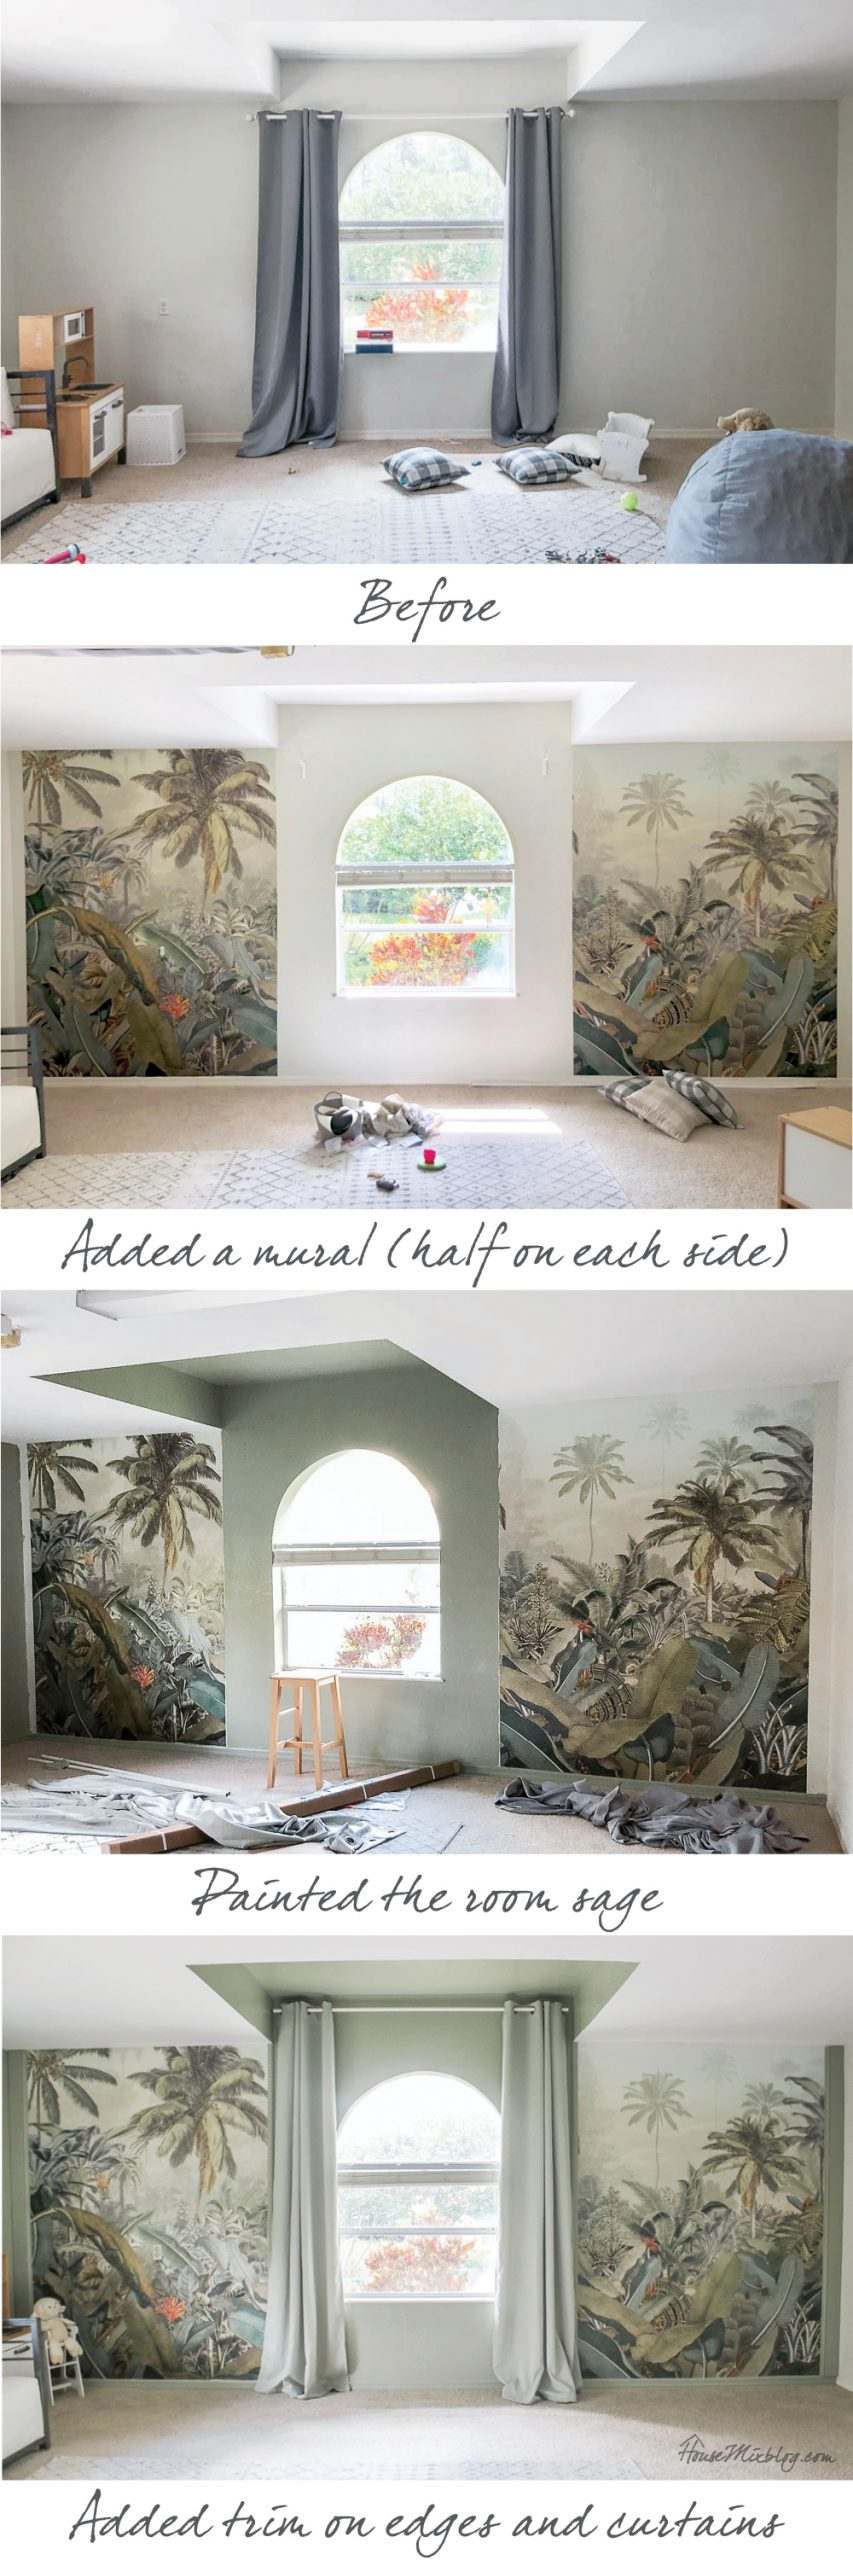 Sage playroom with palm tropical mural - before, progress and after shots